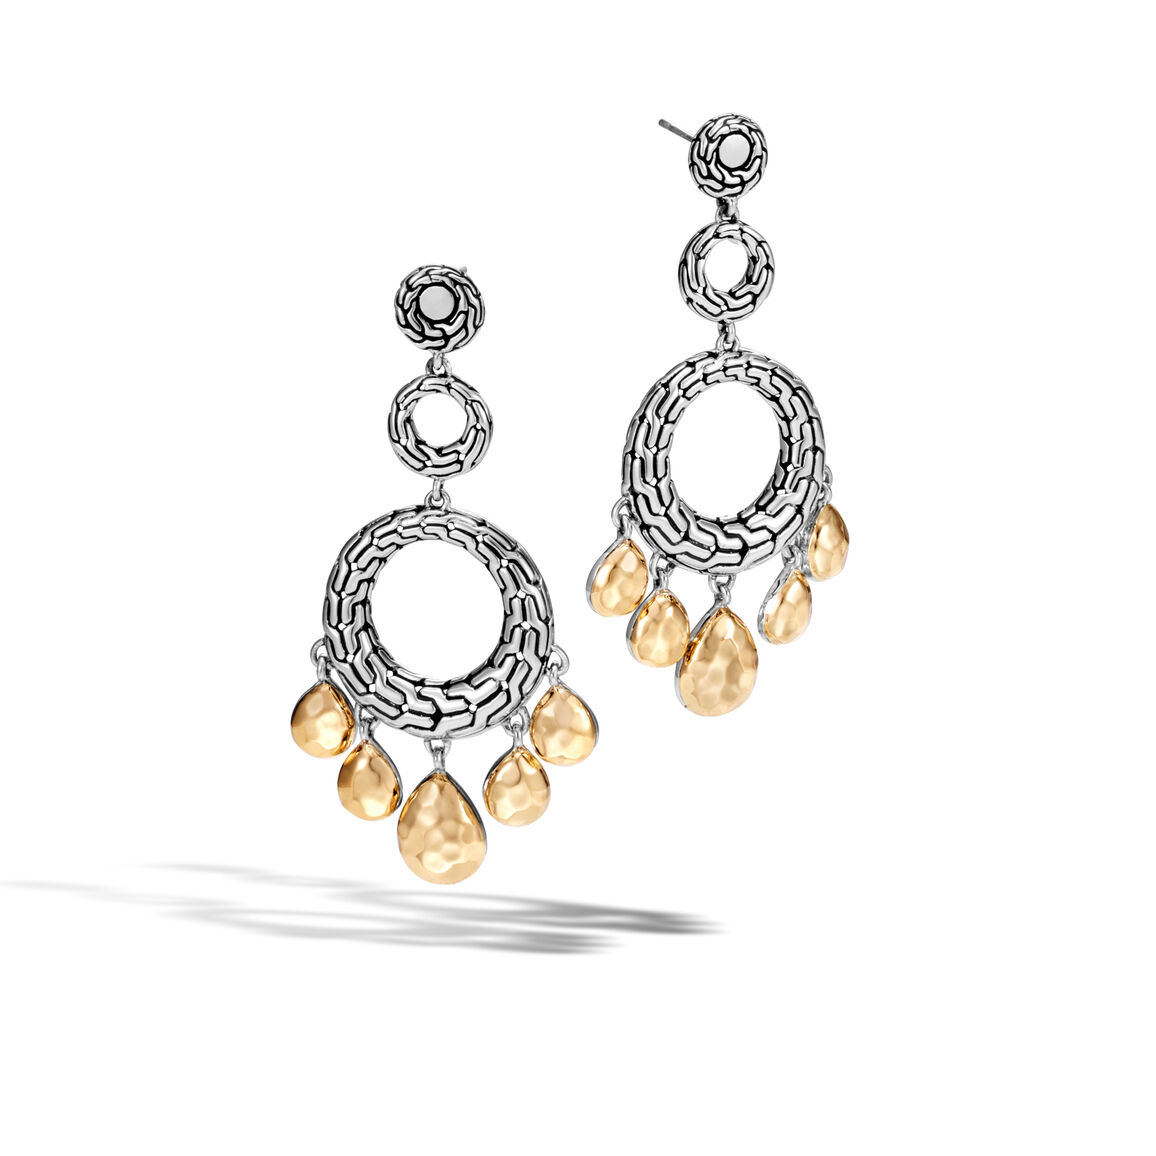 Classic Chain Chandelier Earring, Silver, Hammered 18K Gold